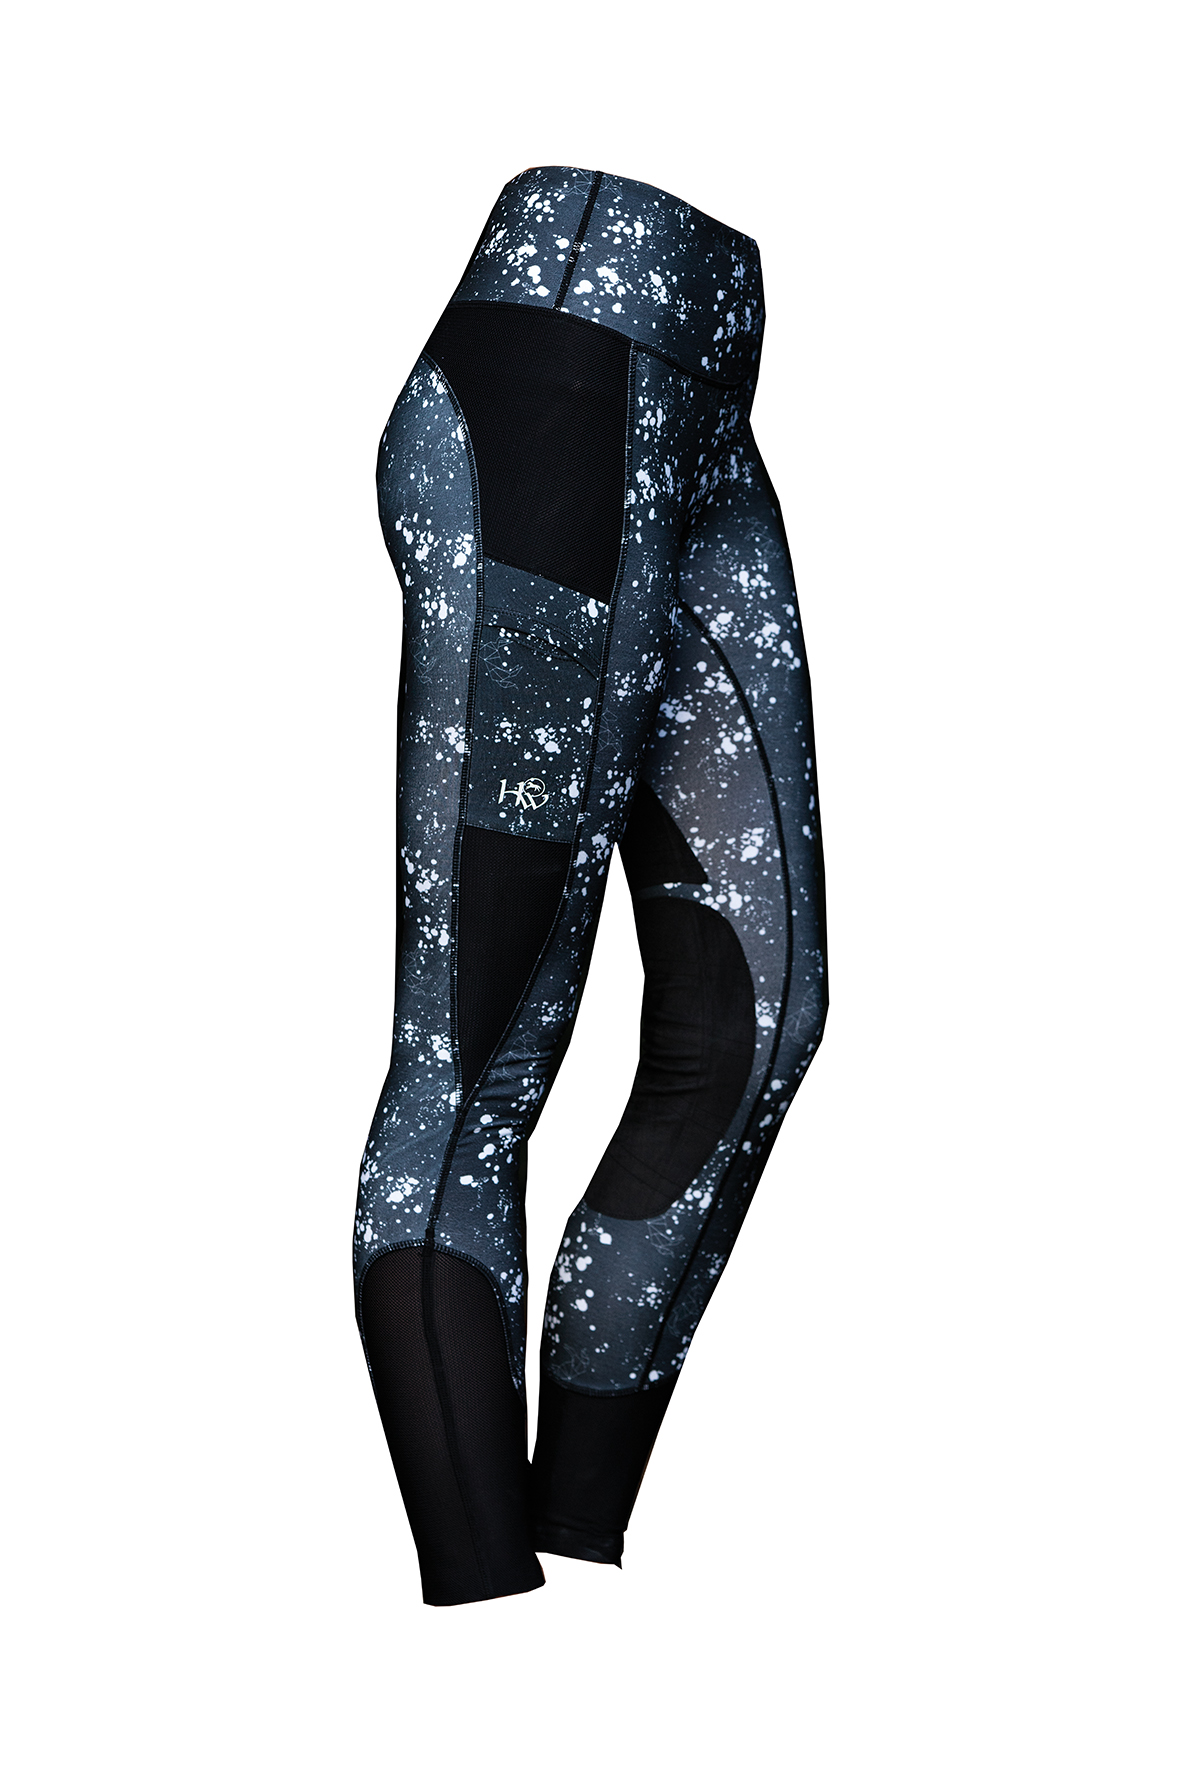 The Horseware Riding Tights in Galaxy Print